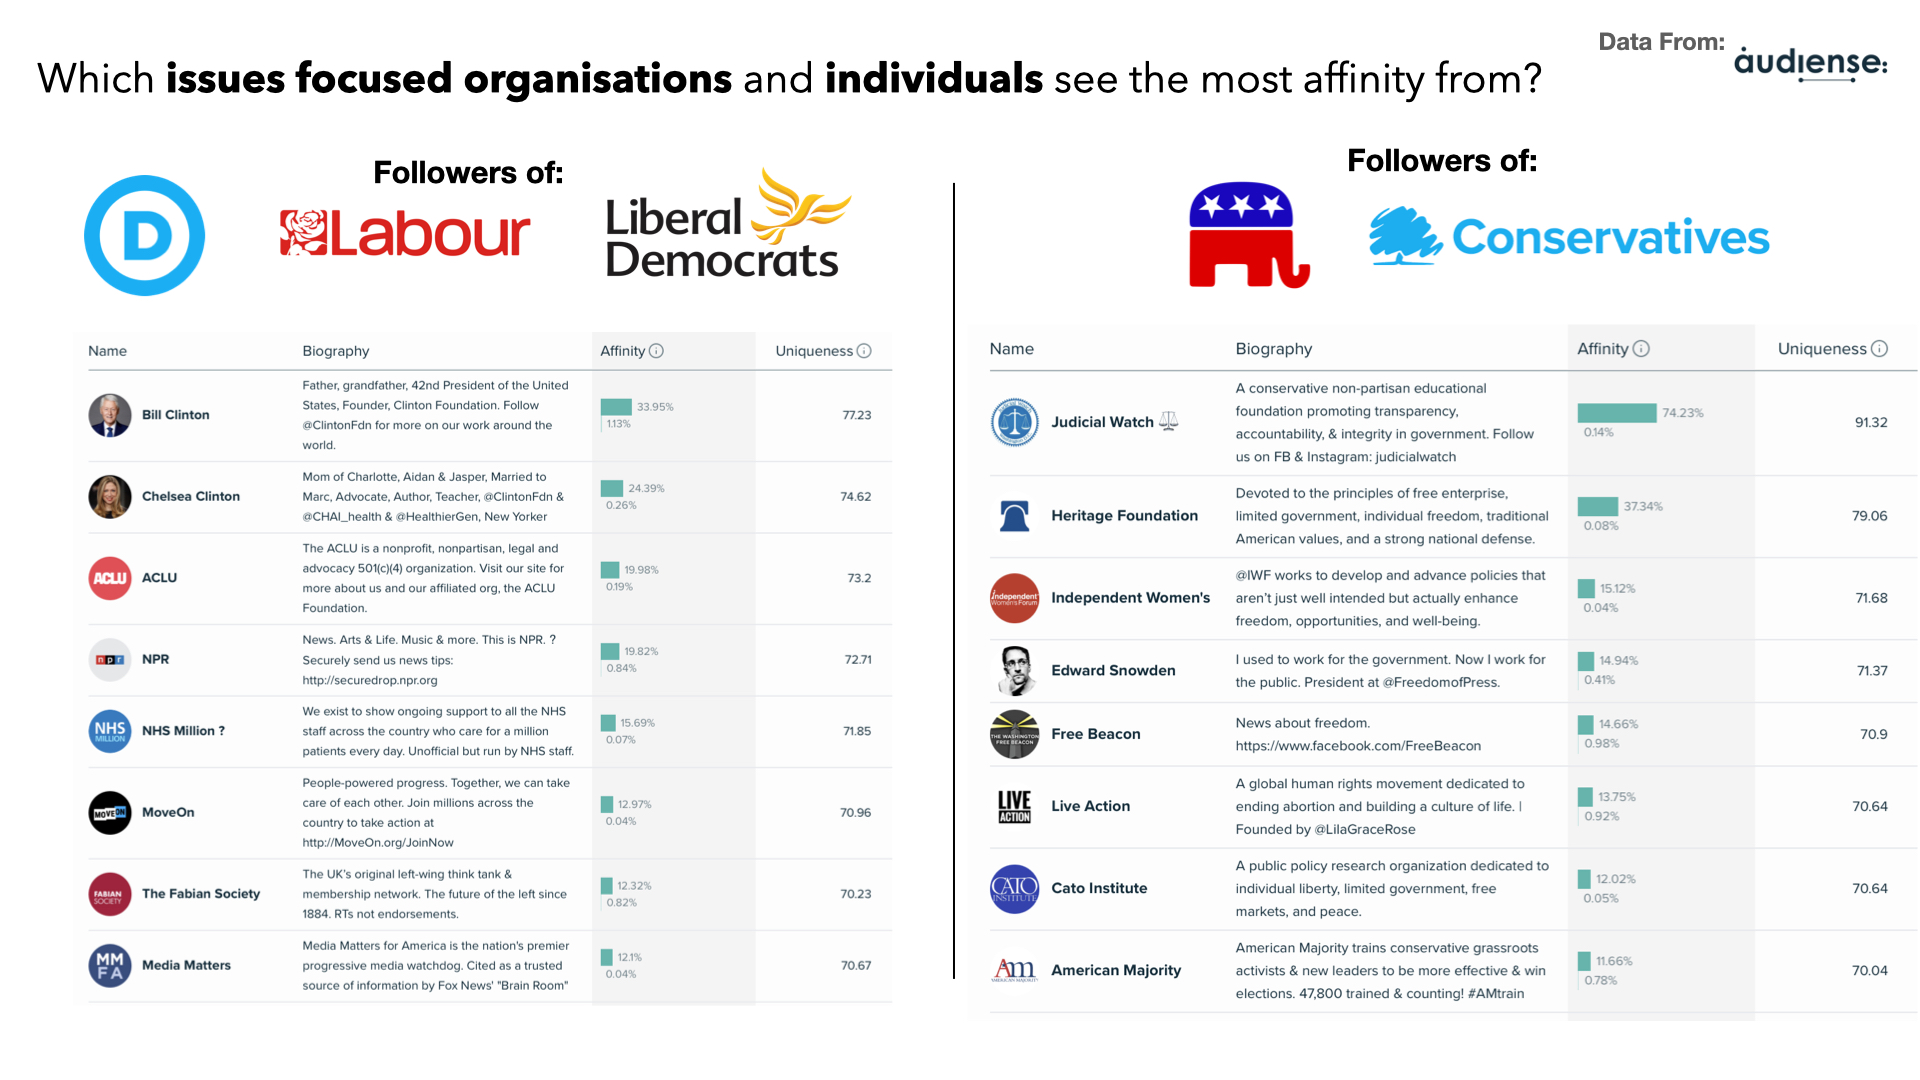 Audiense blog - Which issues focused organisations and individuals see the most affinity from?